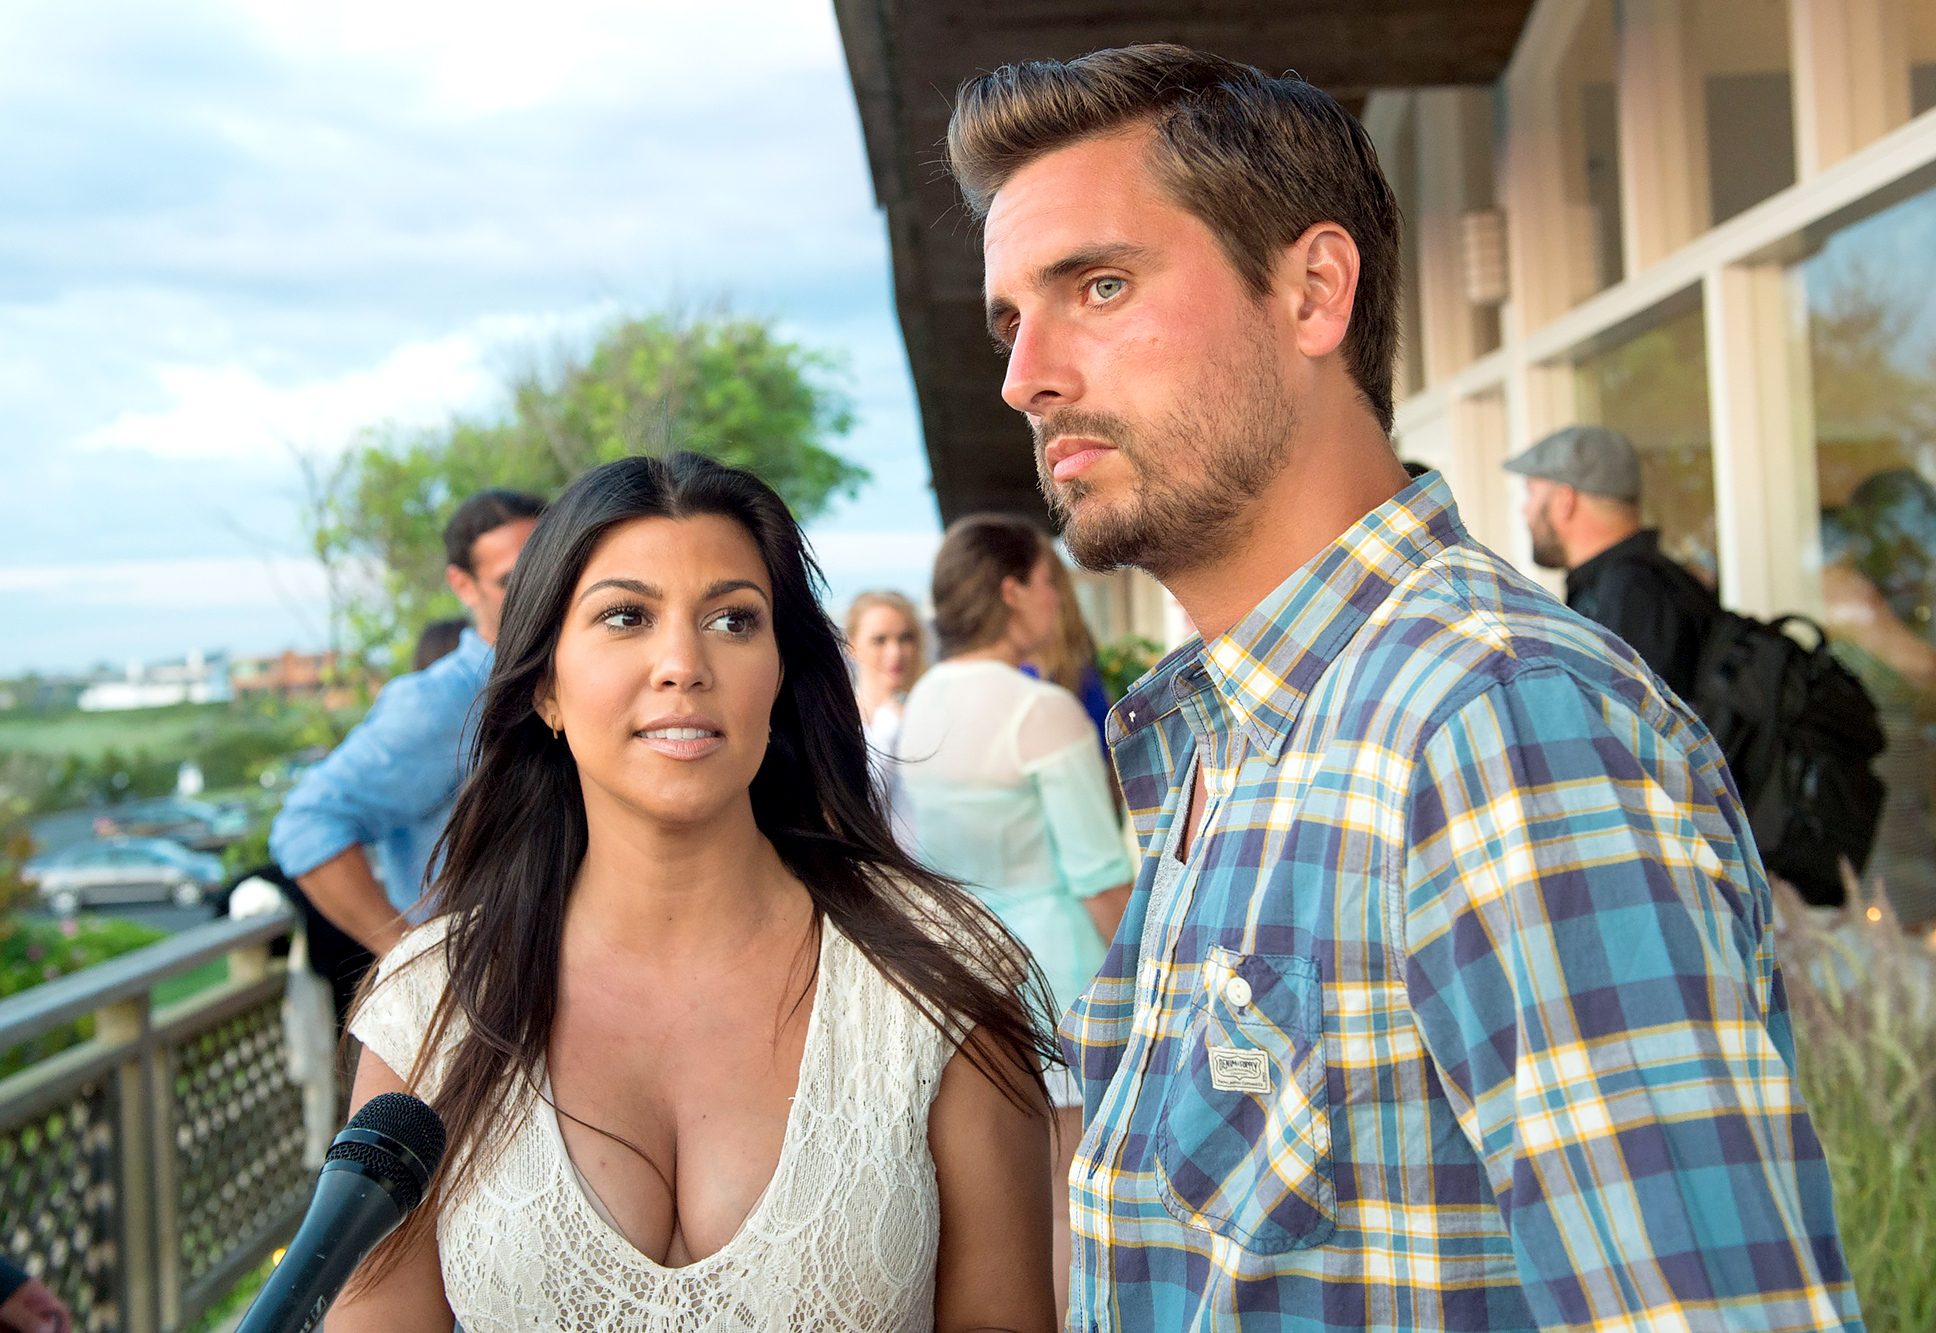 Kourtney Kardashian and Scott Disick Will Not Get Back Together Anytime Soon